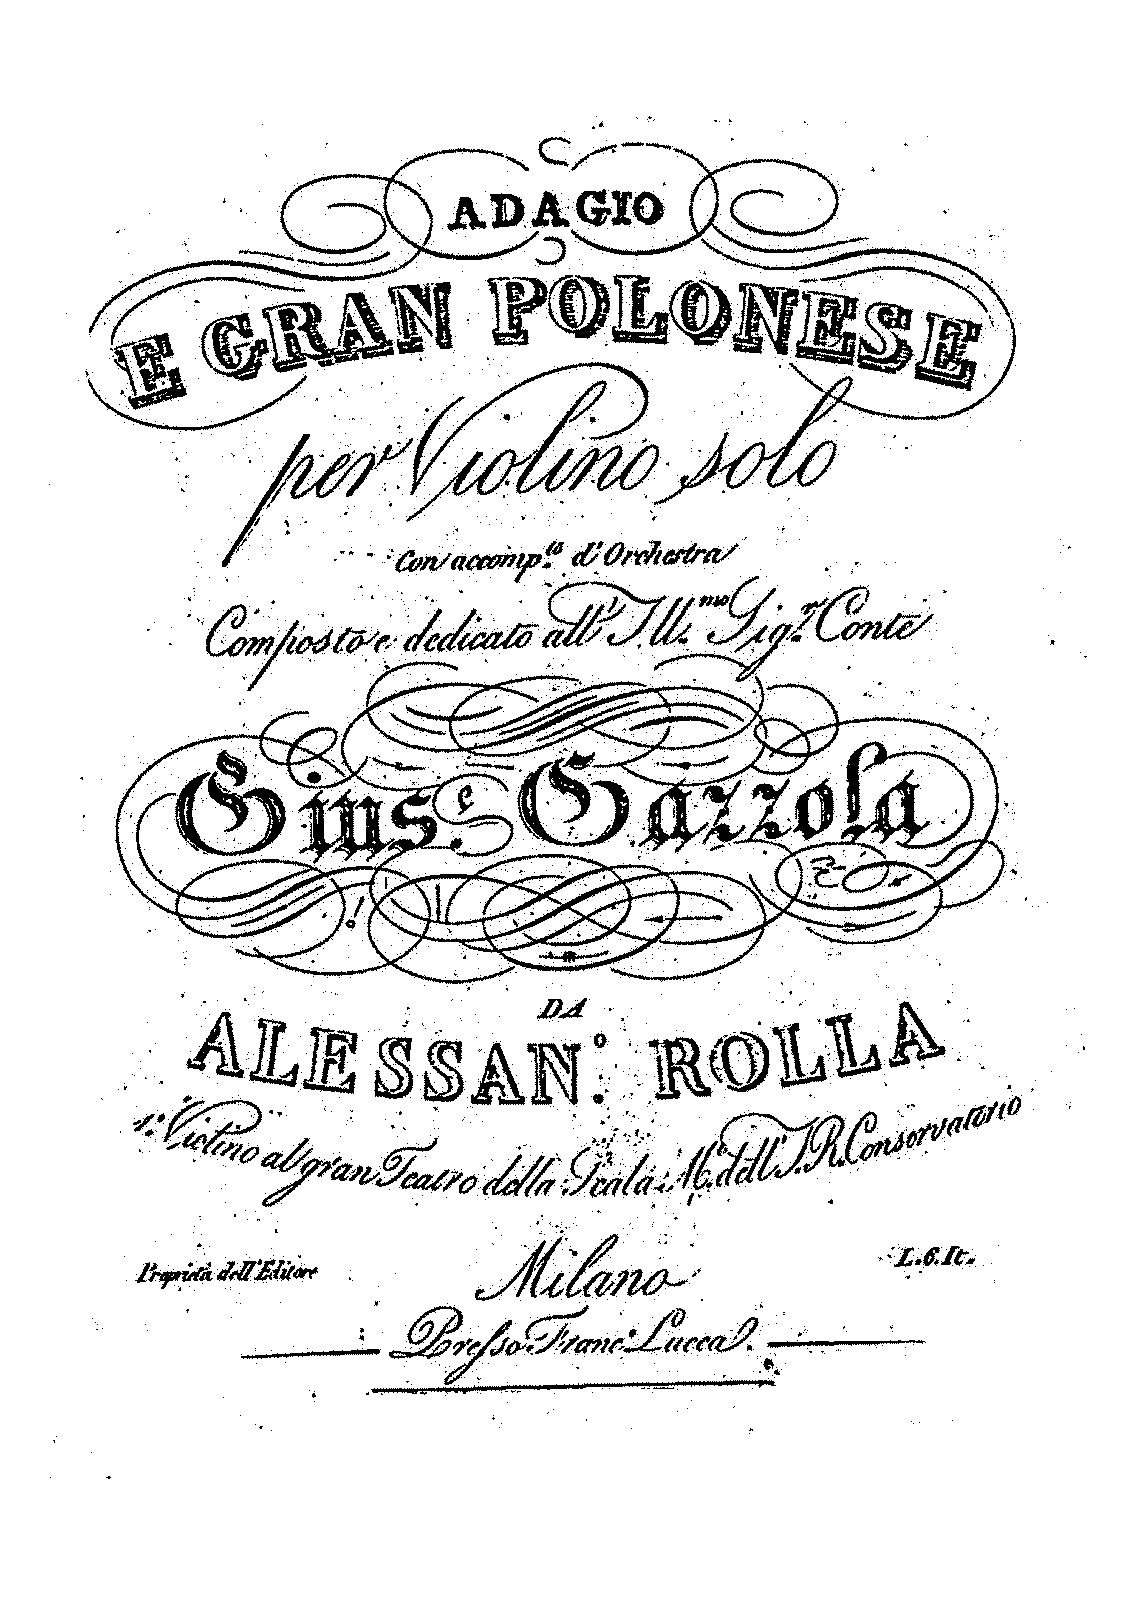 PMLP121566-Rolla Adagio e Grand Polonese for Violin and Orchestra BI 494.pdf